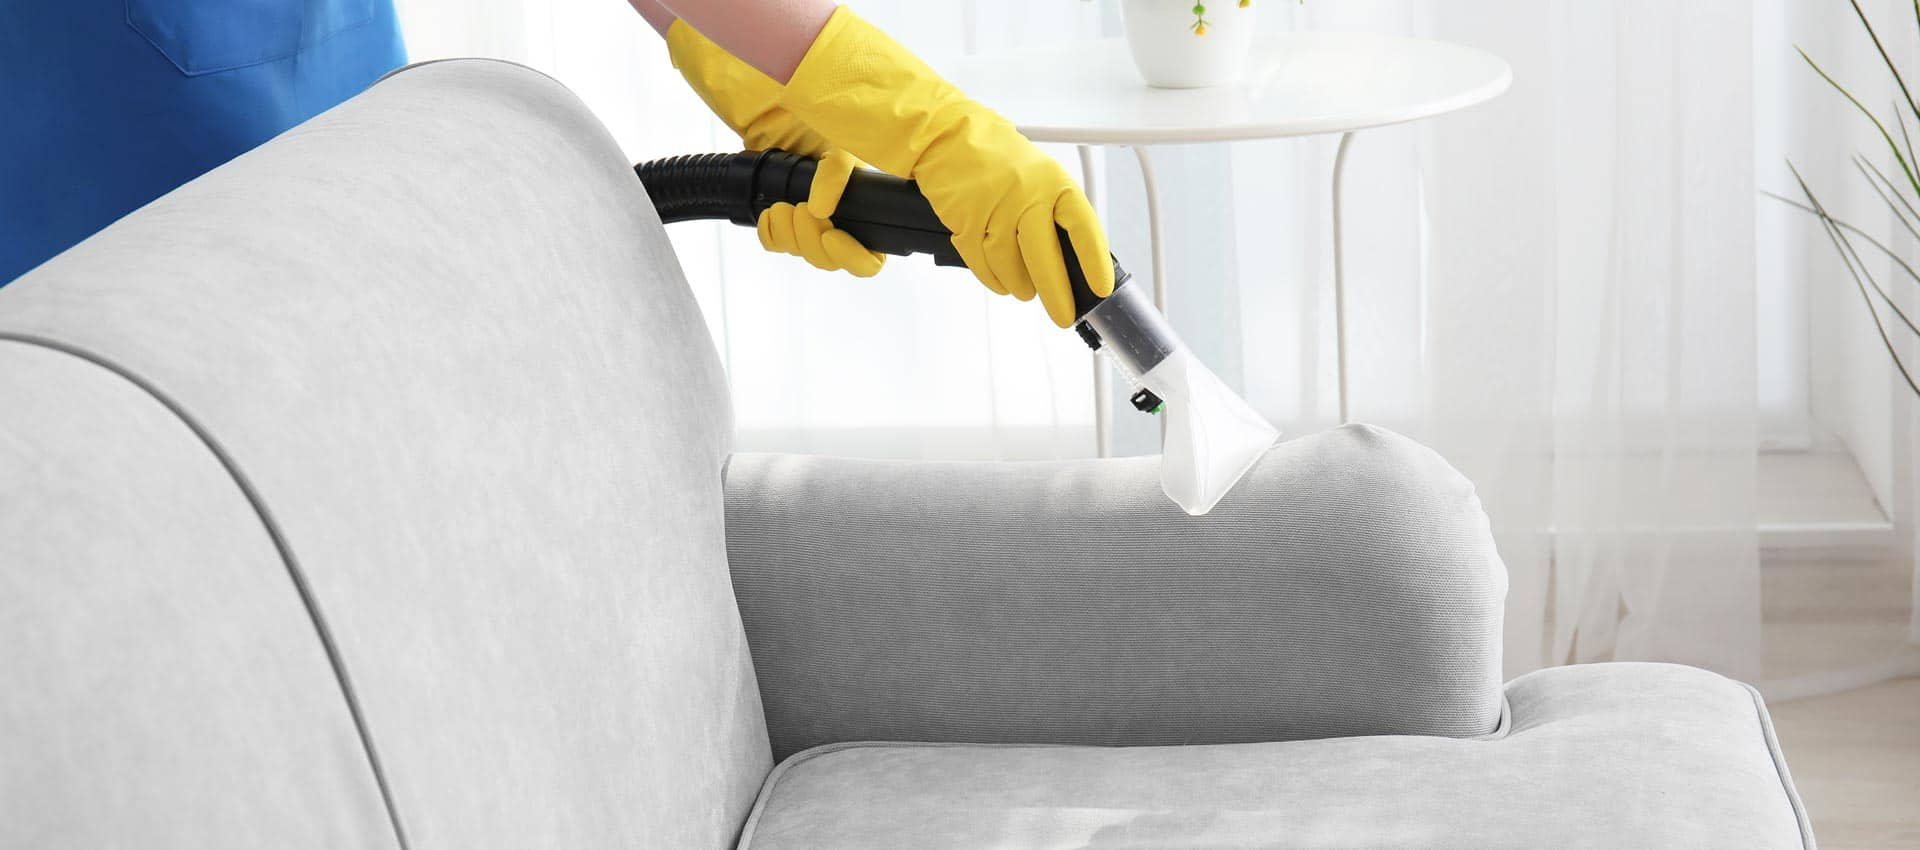 cleaner cleaning upholstery